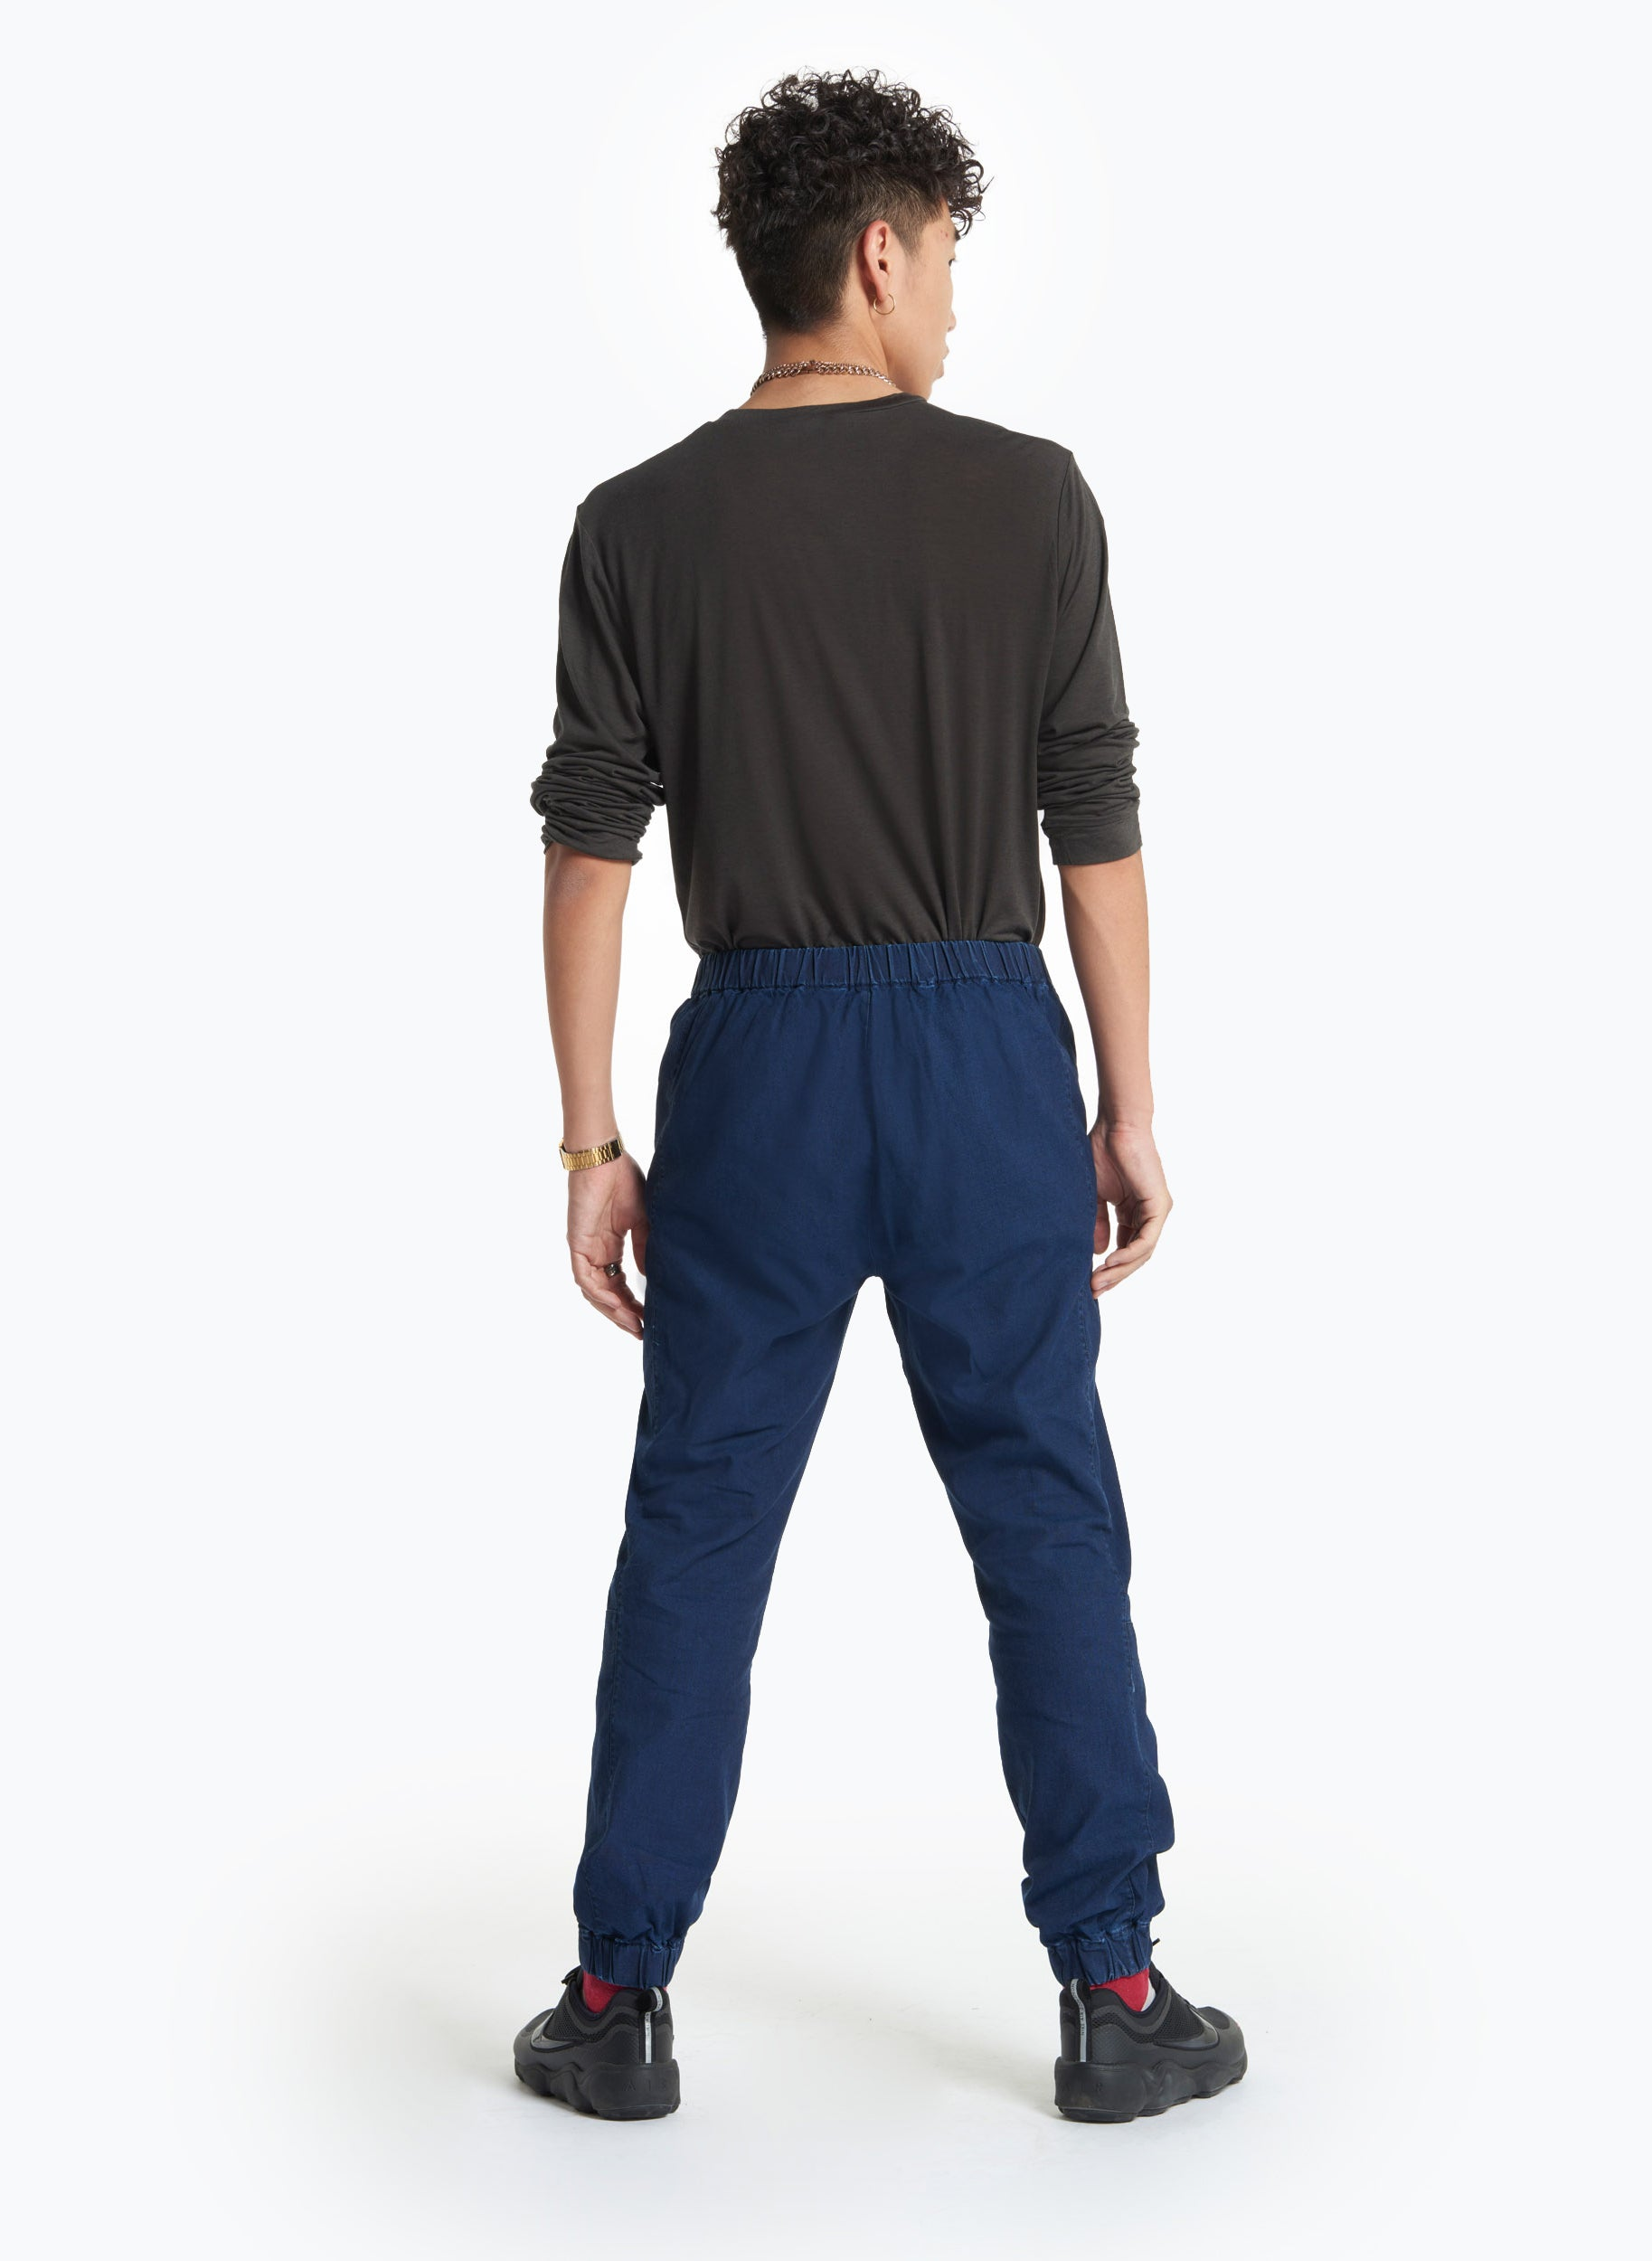 Jogging Pants with Side Cutouts in Indigo Denim